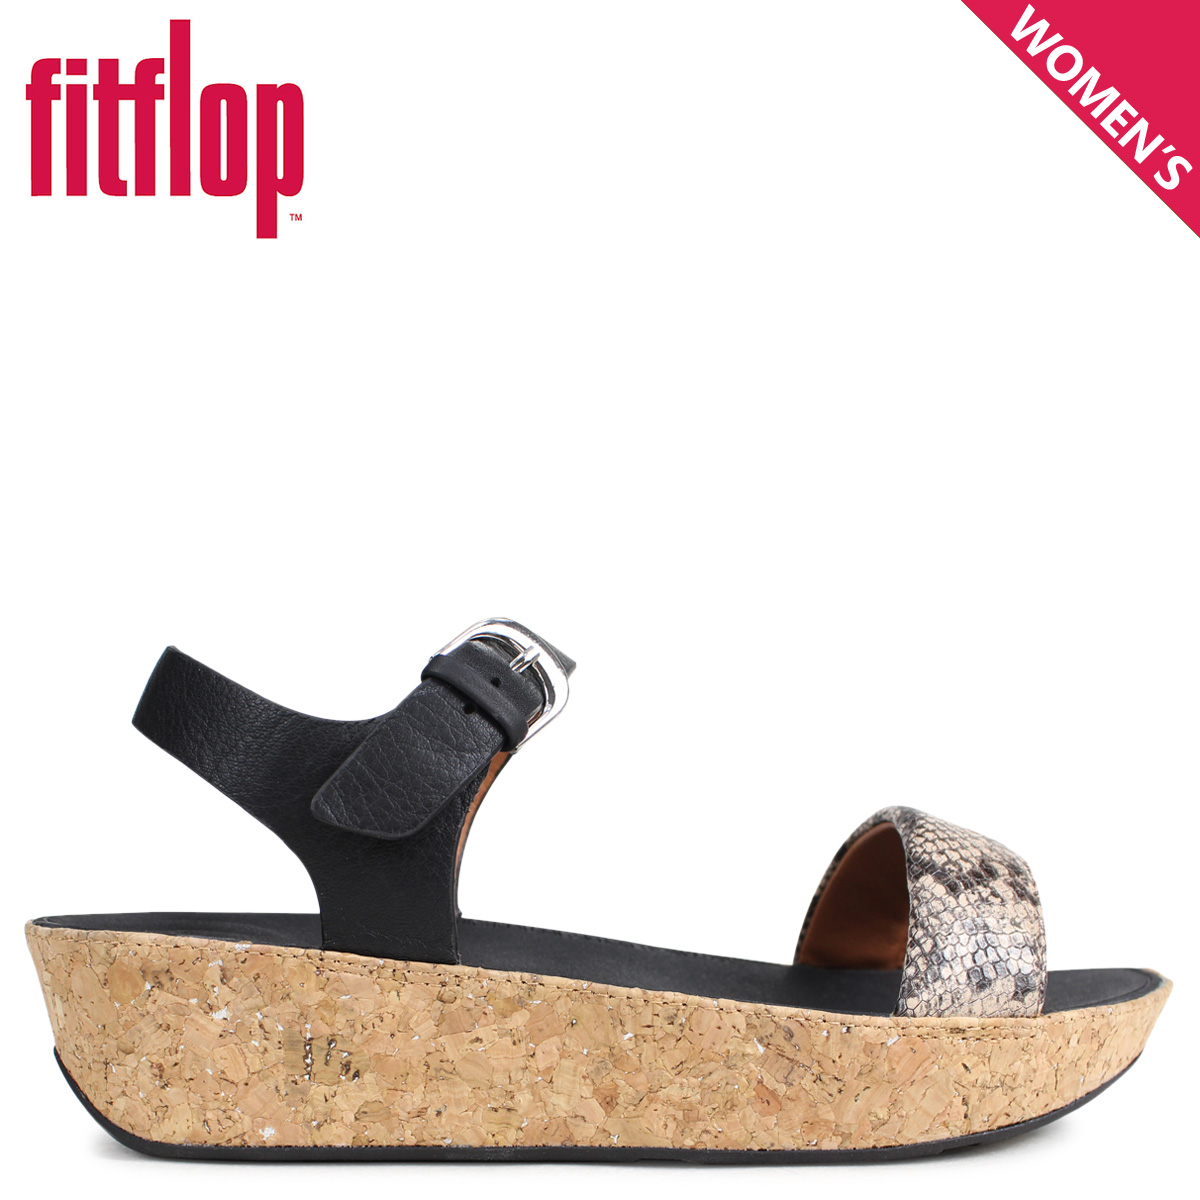 578aaac01 Sugar Online Shop  Fitting FLOP sandals FitFlop 2